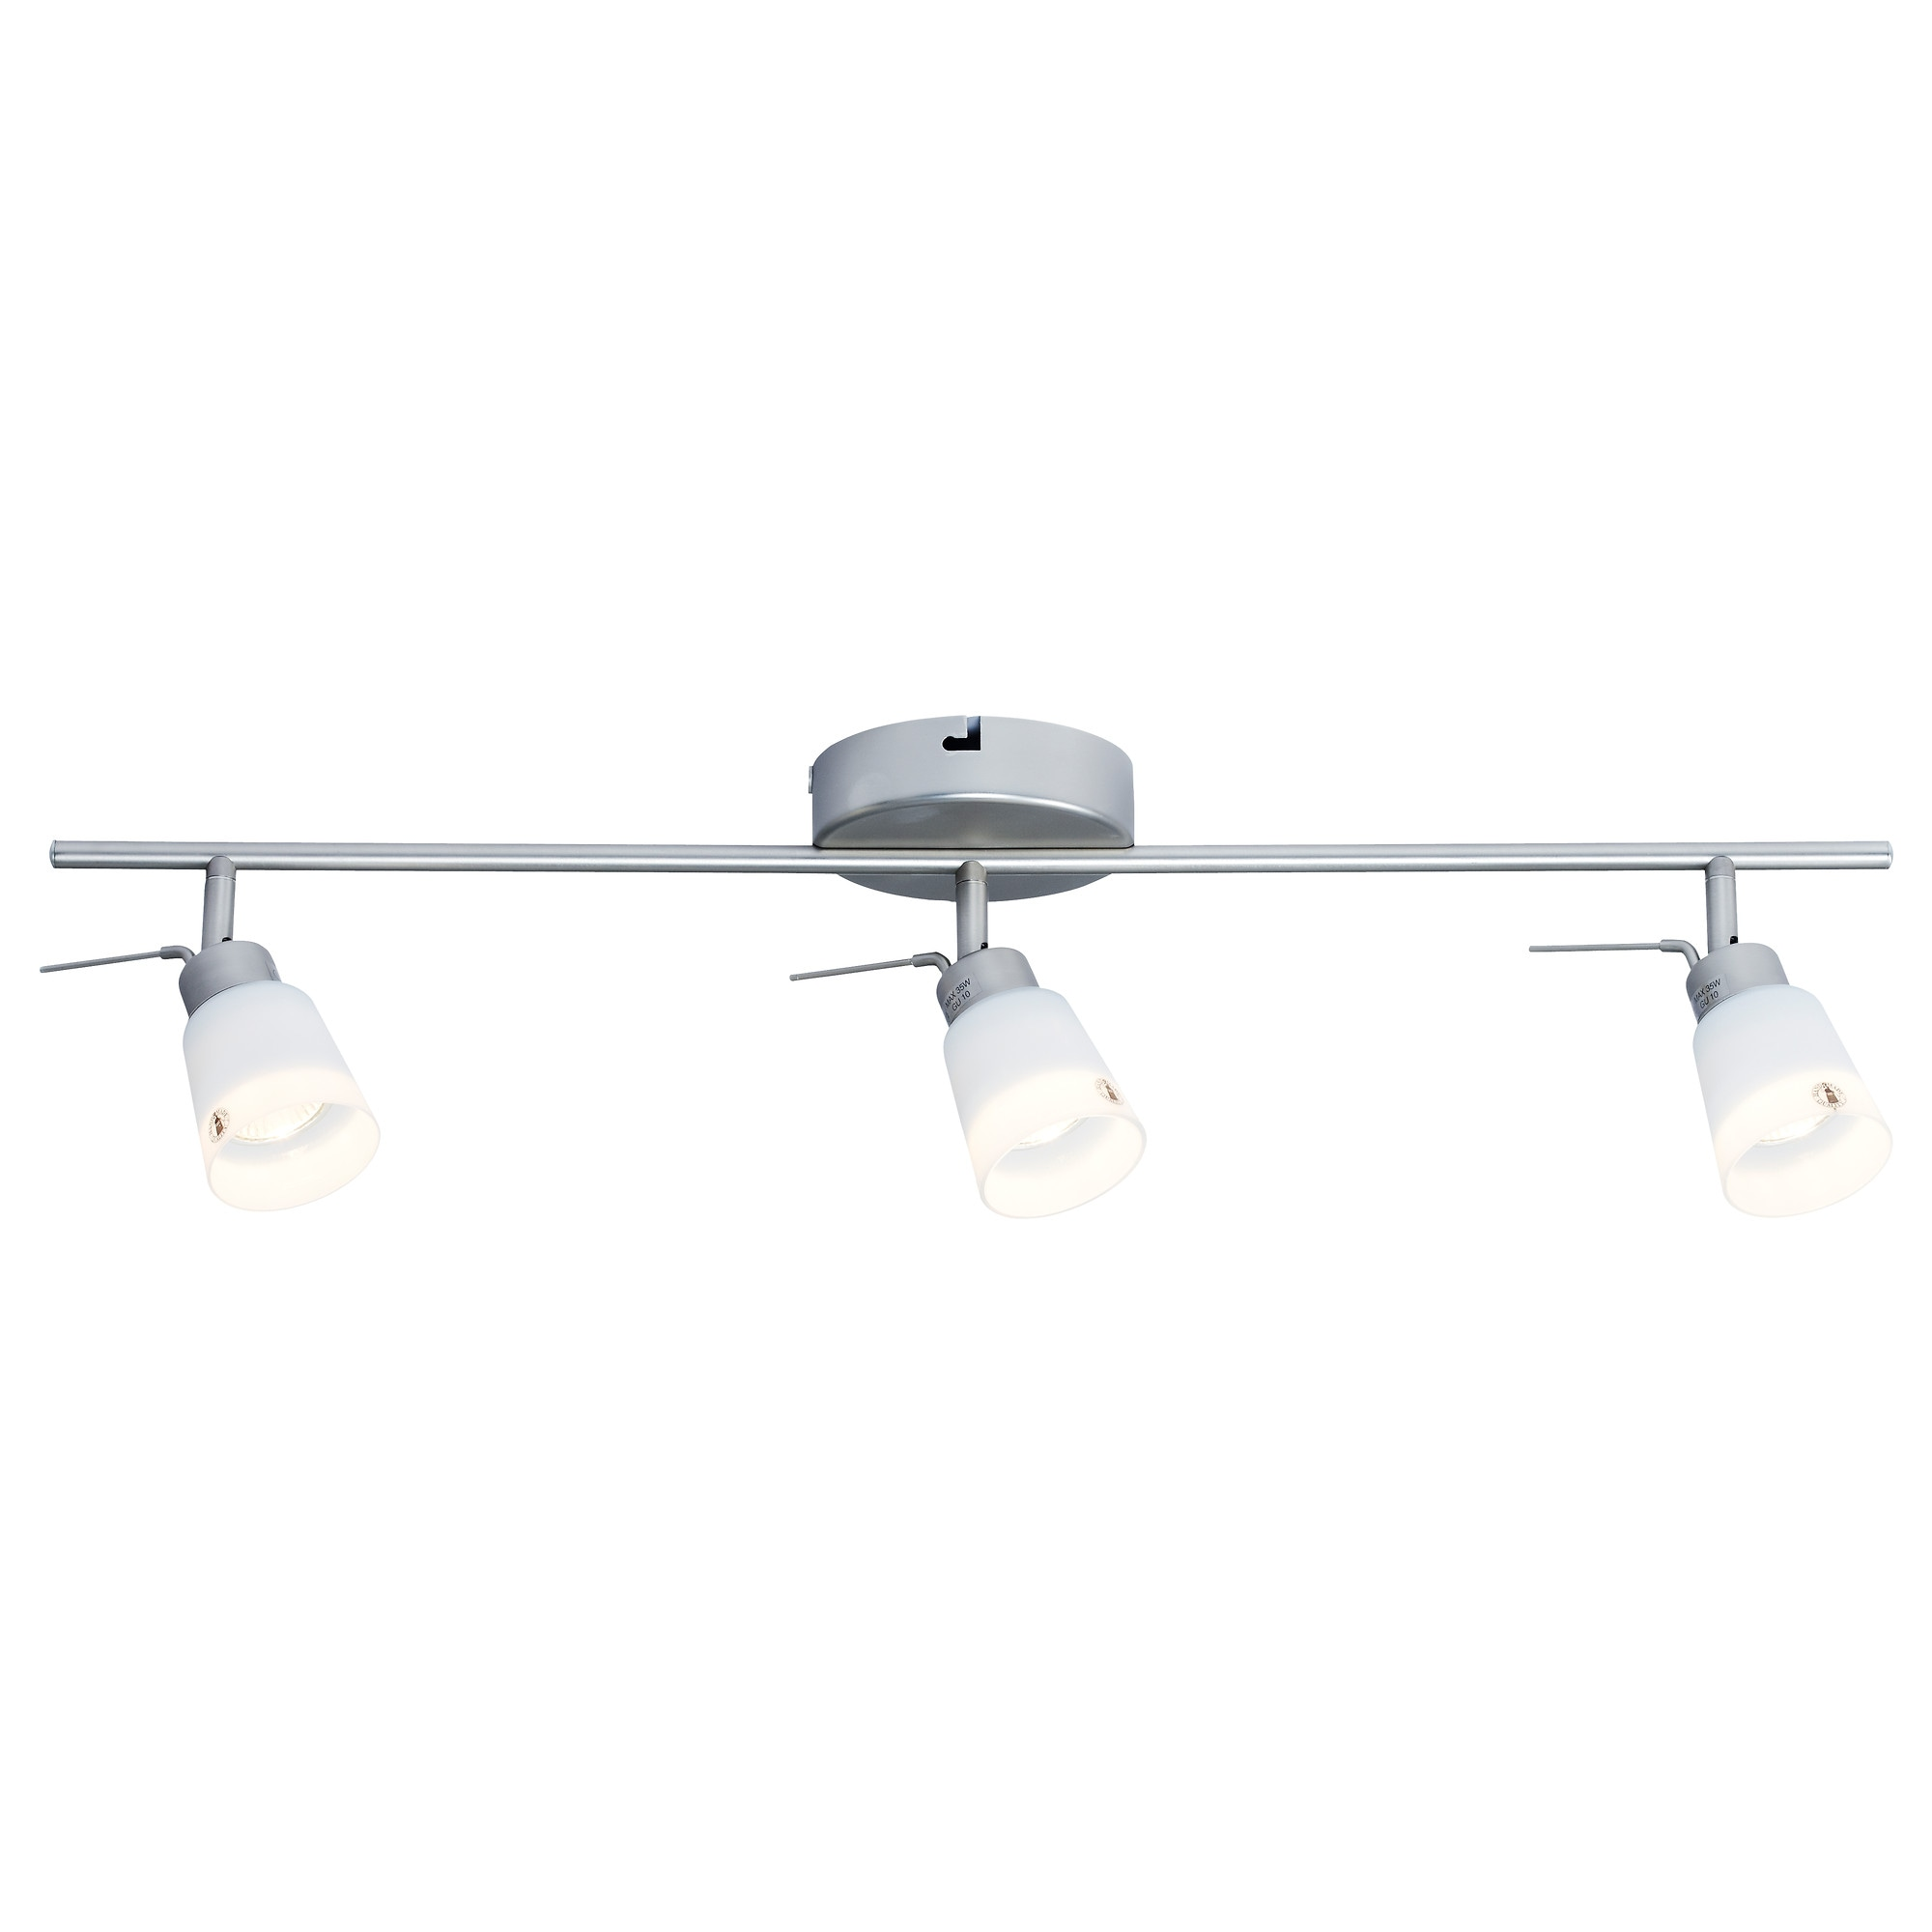 BASISK ceiling track, 3 spotlights, nickel plated, white Max.: 35 W